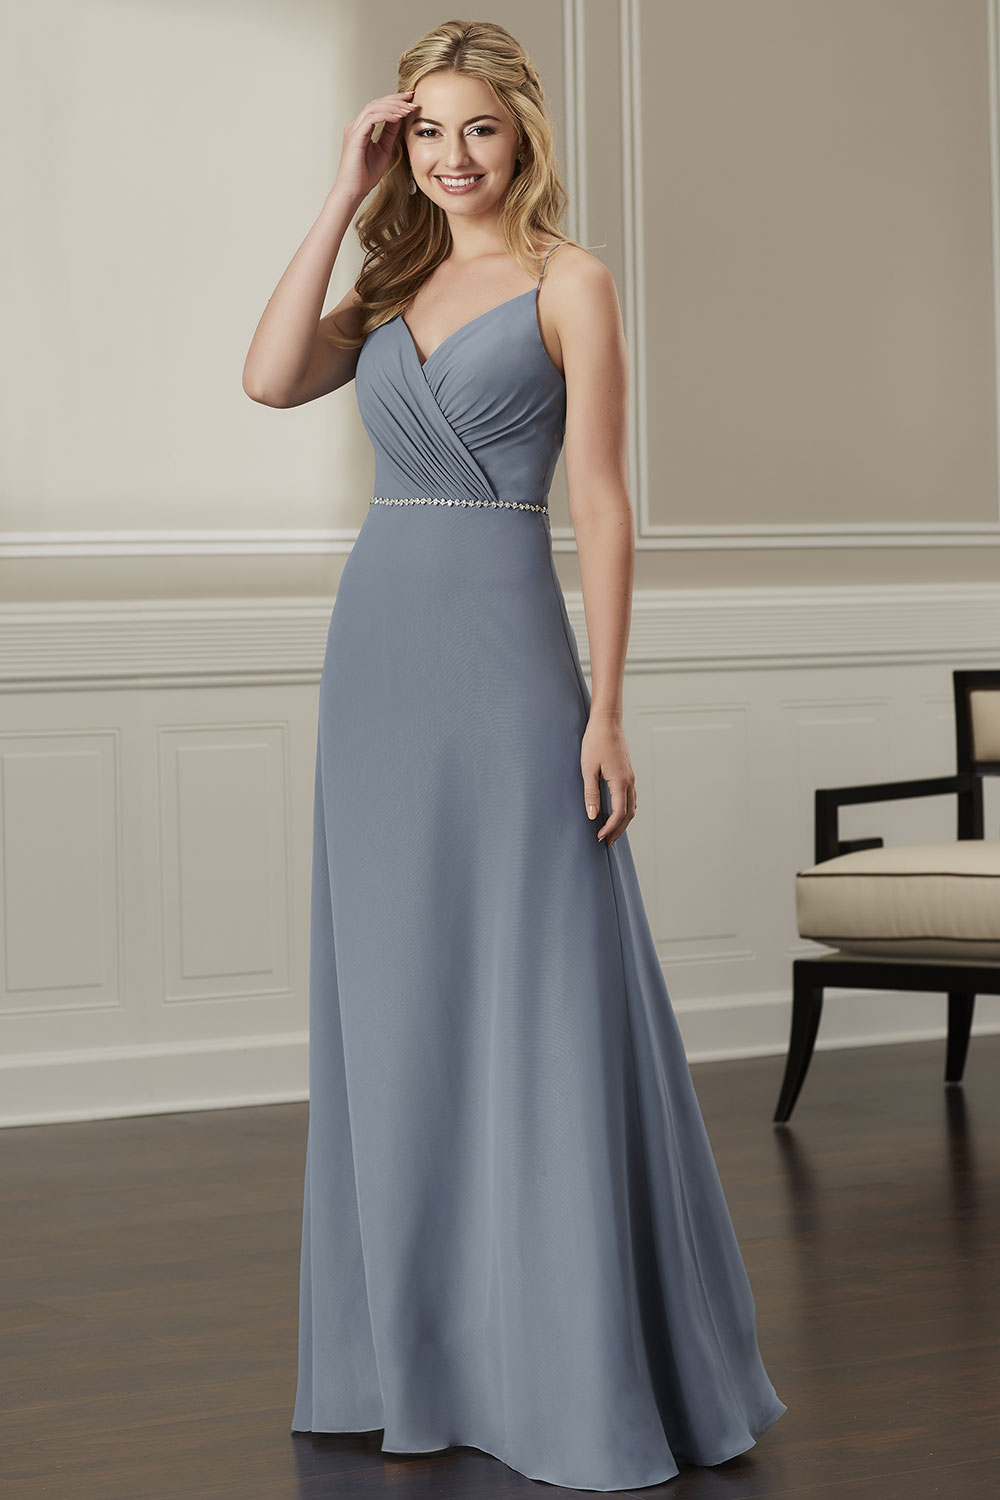 bridesmaid-dresses-jacquelin-bridals-canada-26838